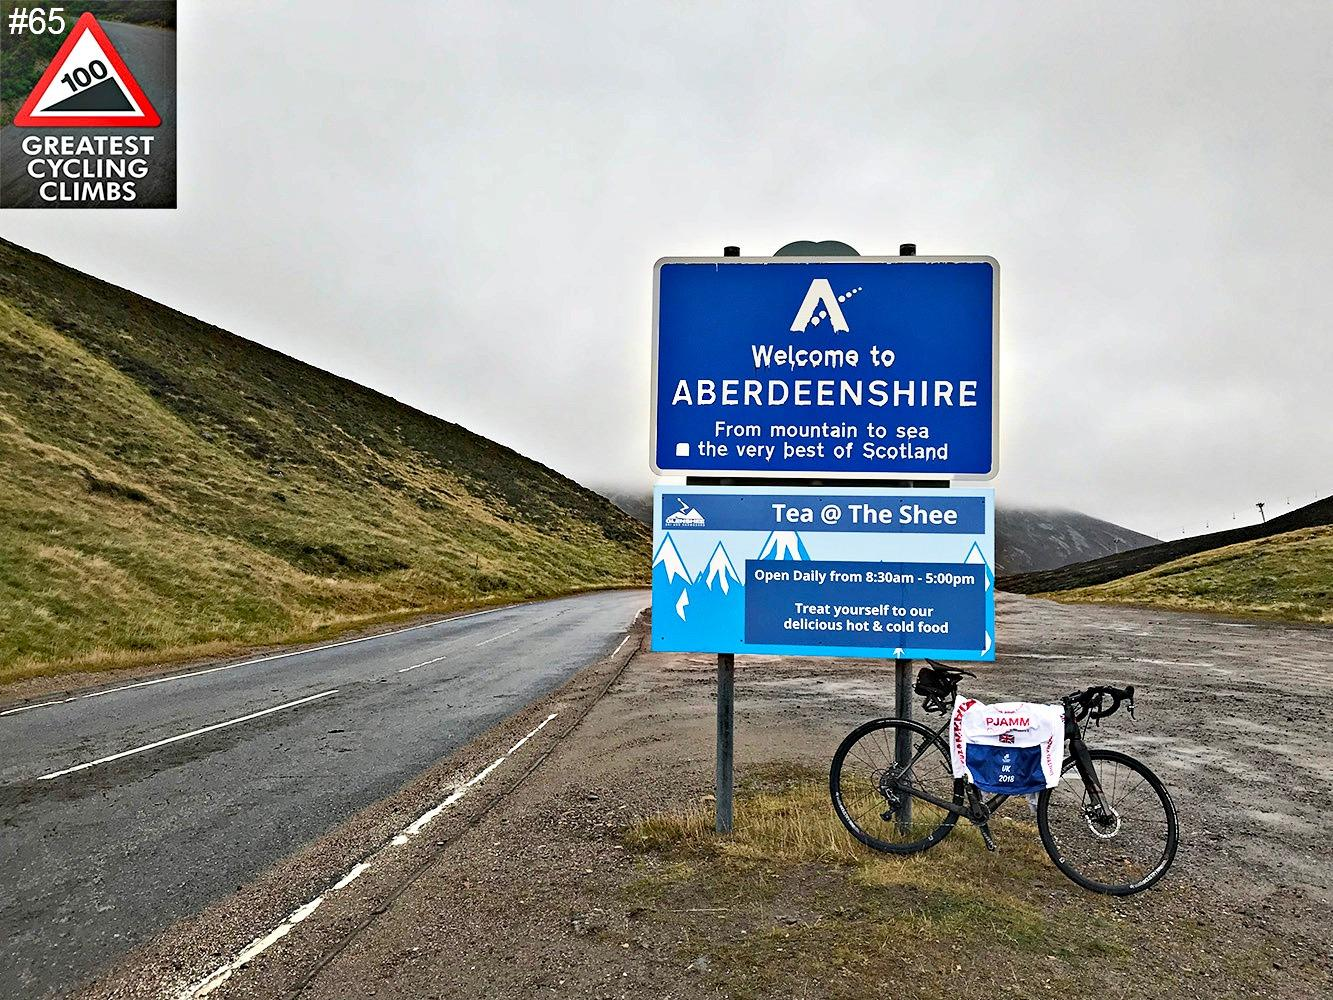 The Cairnwell (SW #65) Bike Climb - PJAMM Cycling